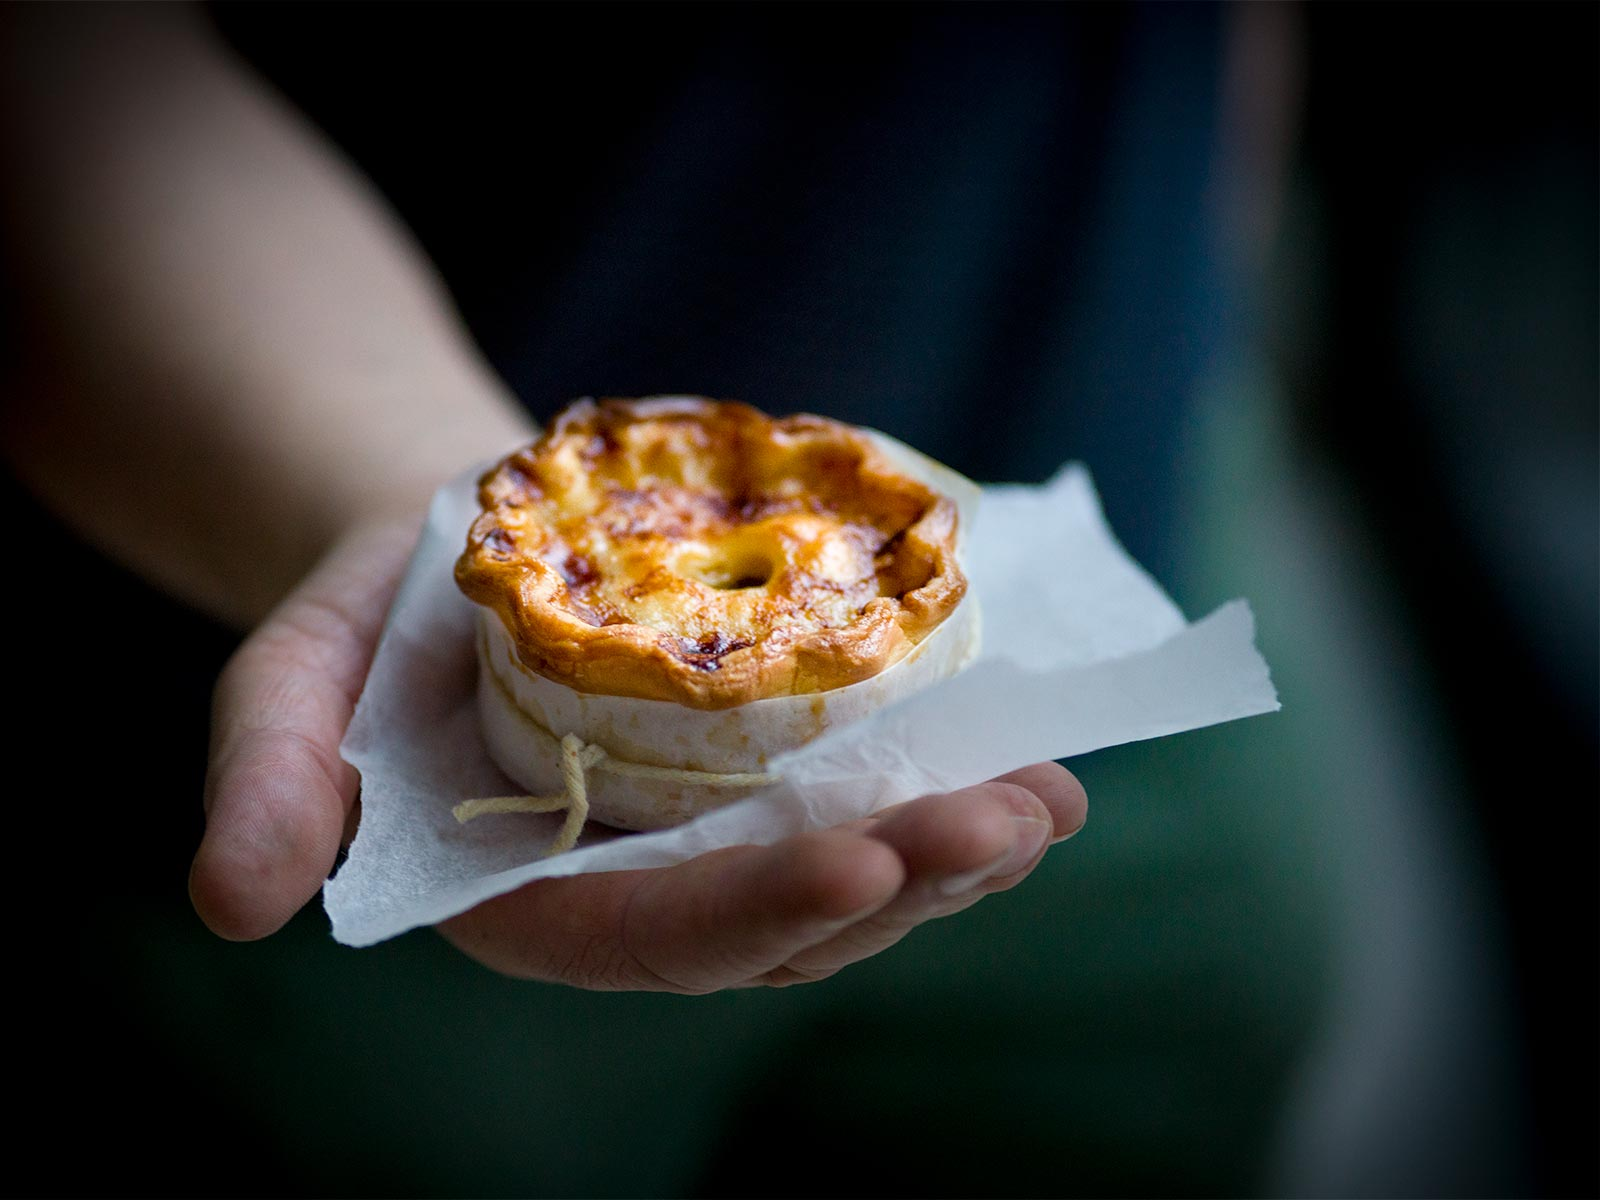 a pie in the hand - lamb scotch pies